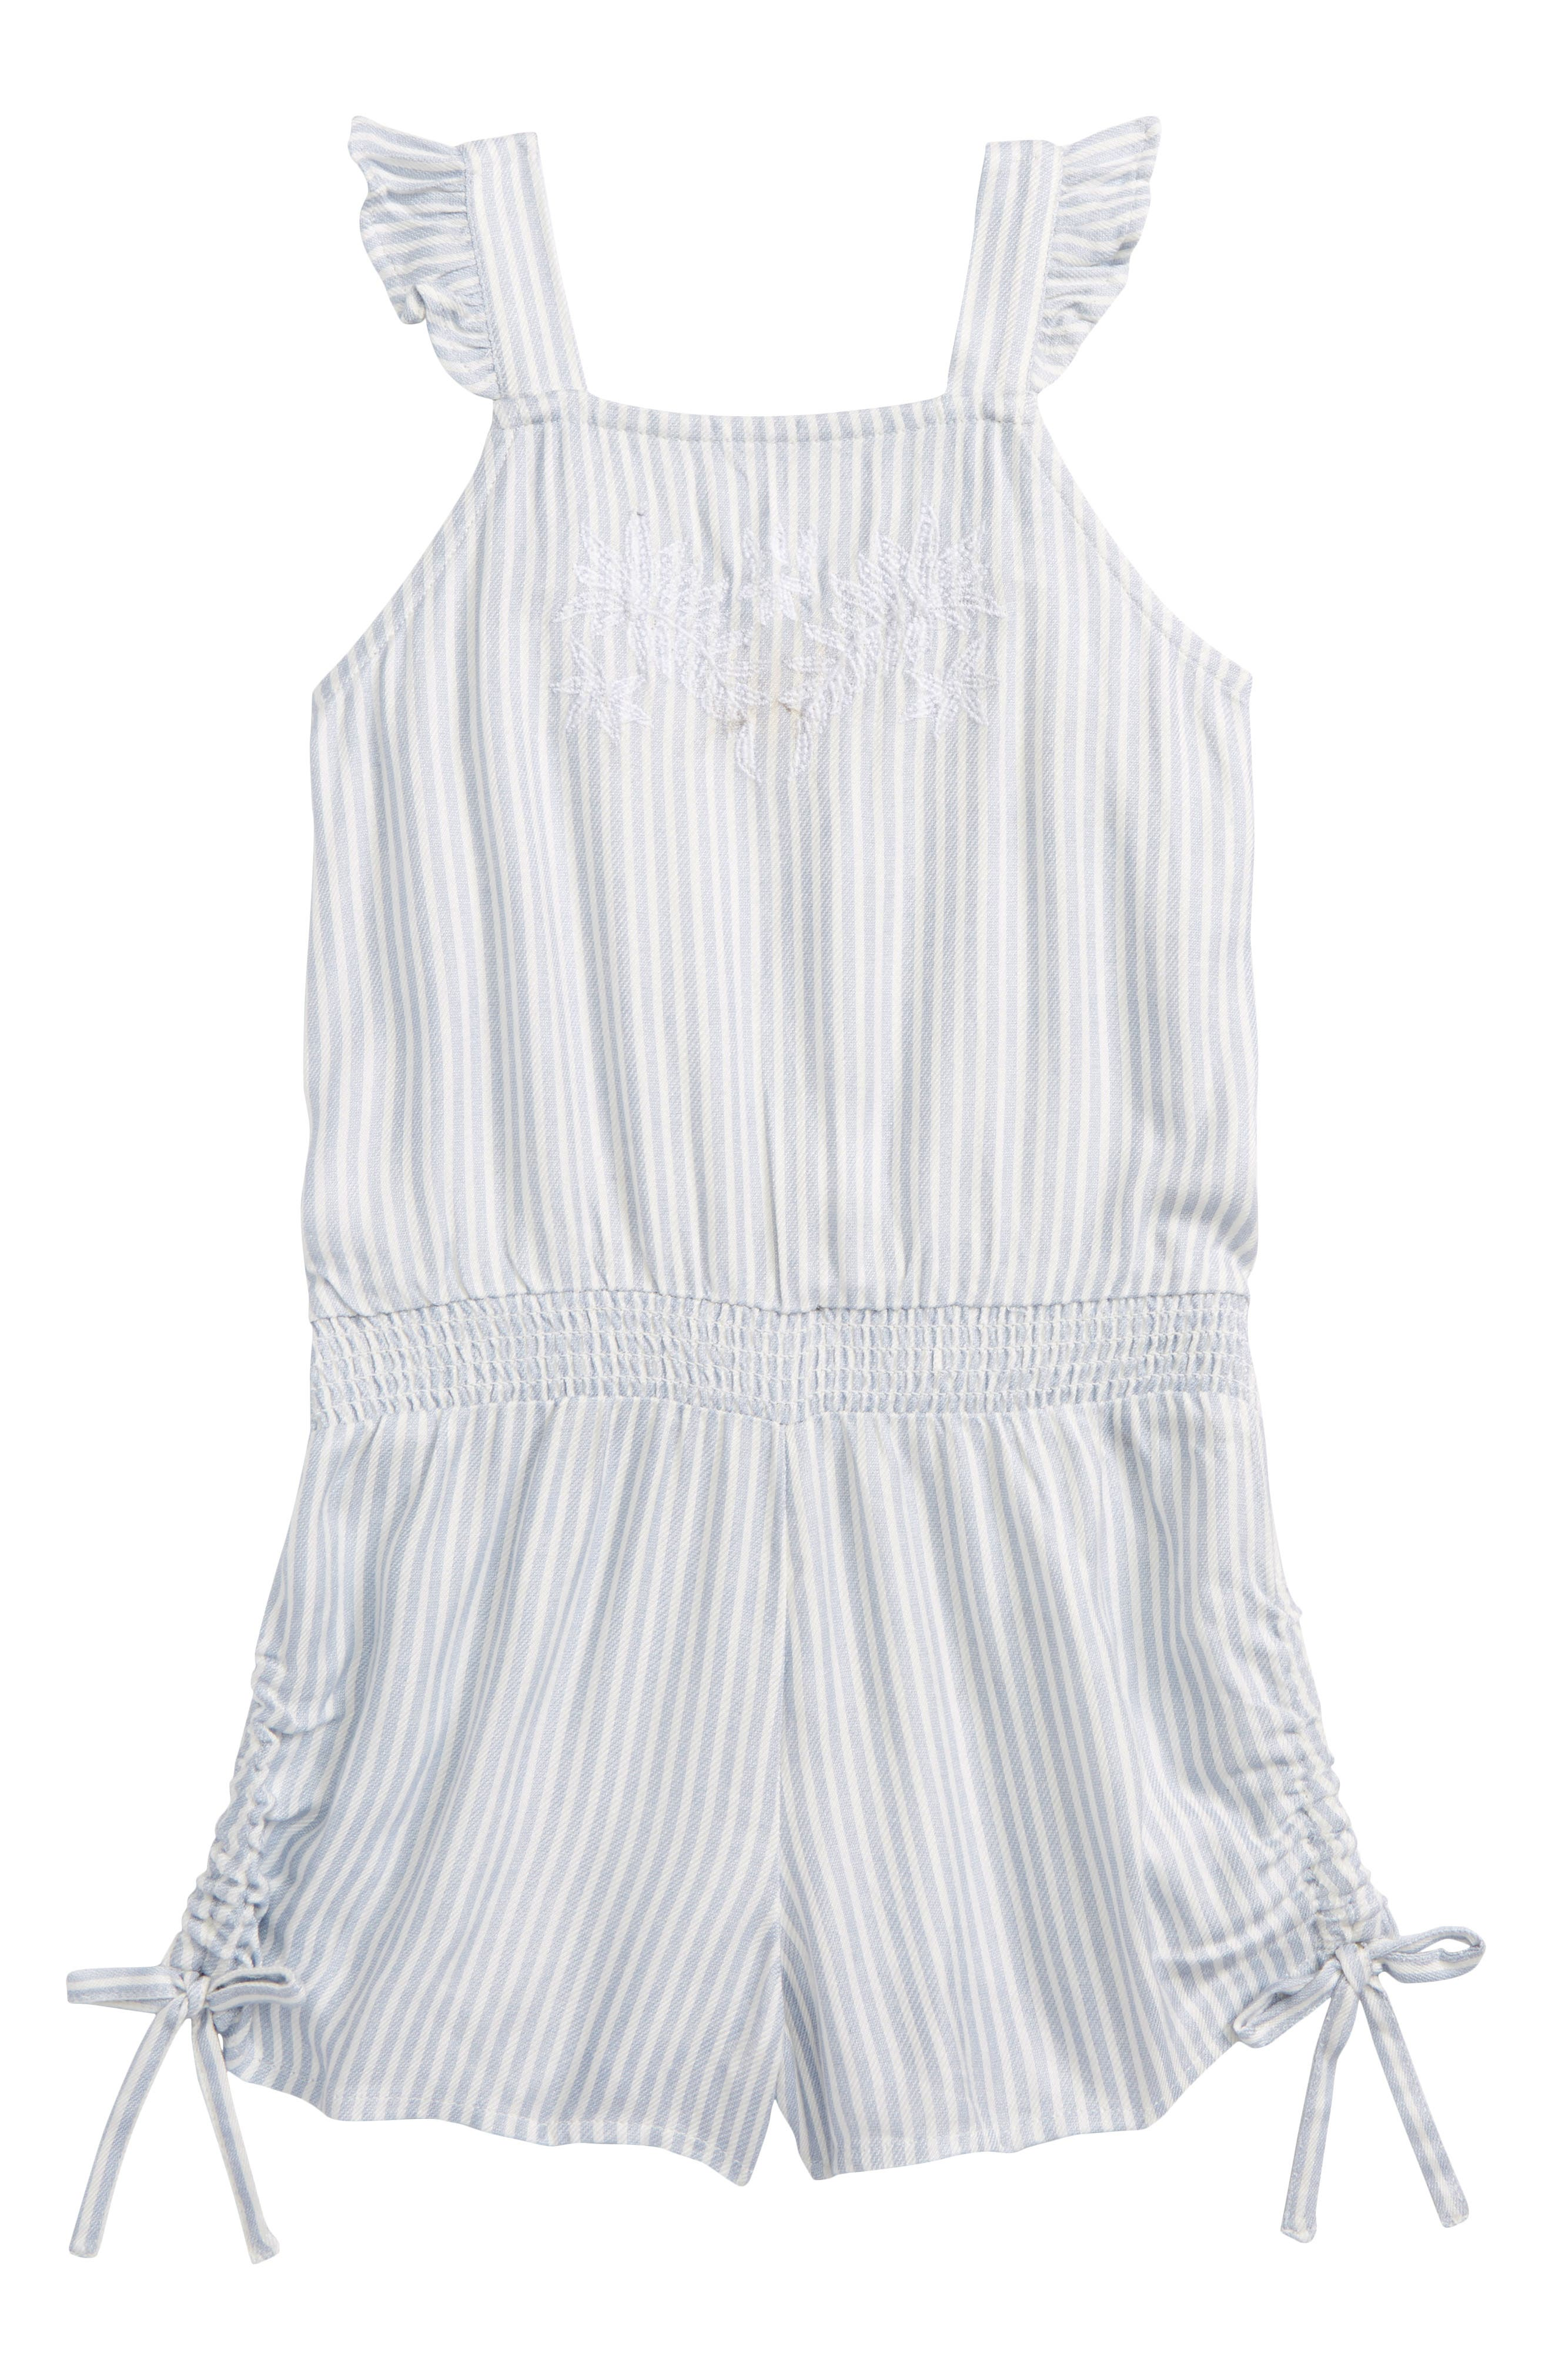 Lemonade Stripe Romper,                             Alternate thumbnail 4, color,                             Bleached Periwinkle